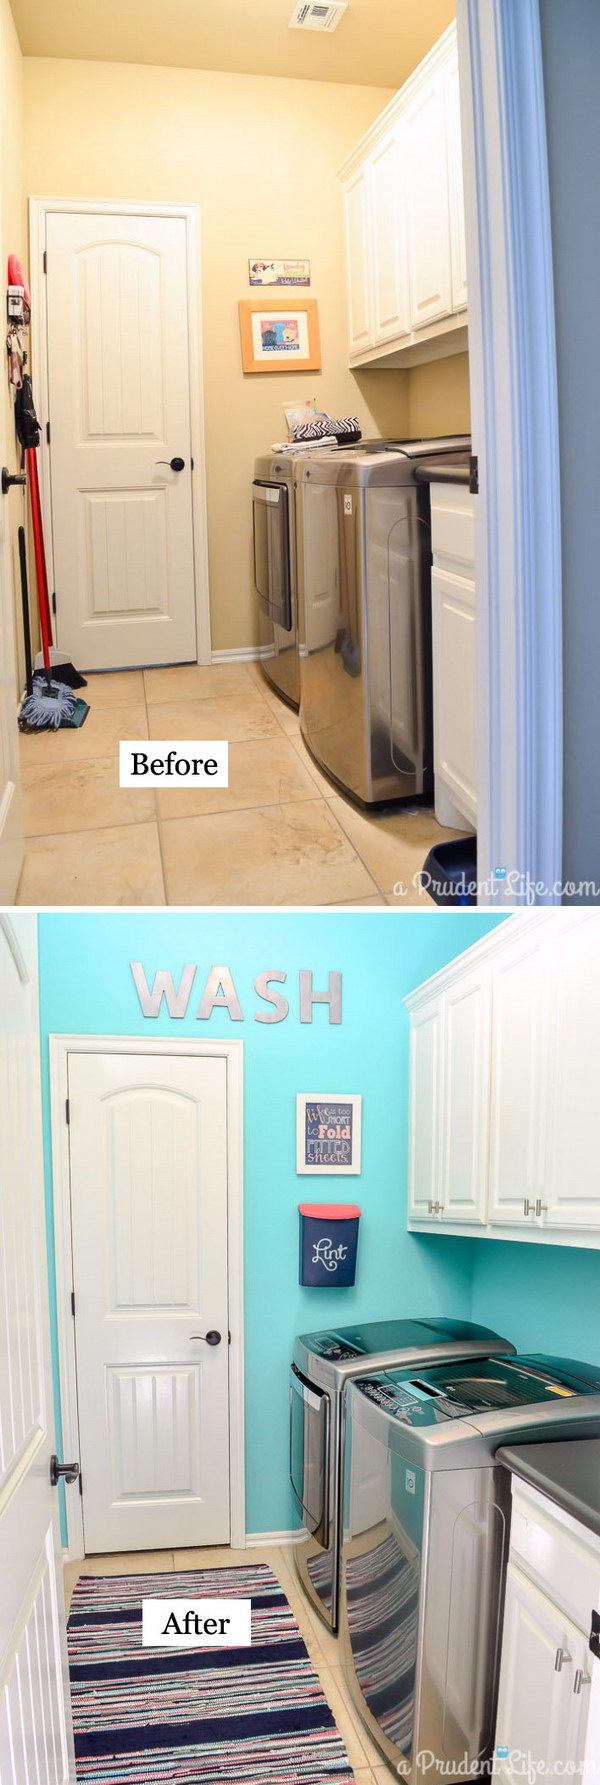 Incredible Makeover Under $100 with Bright Wall Color and the Striped Rug.